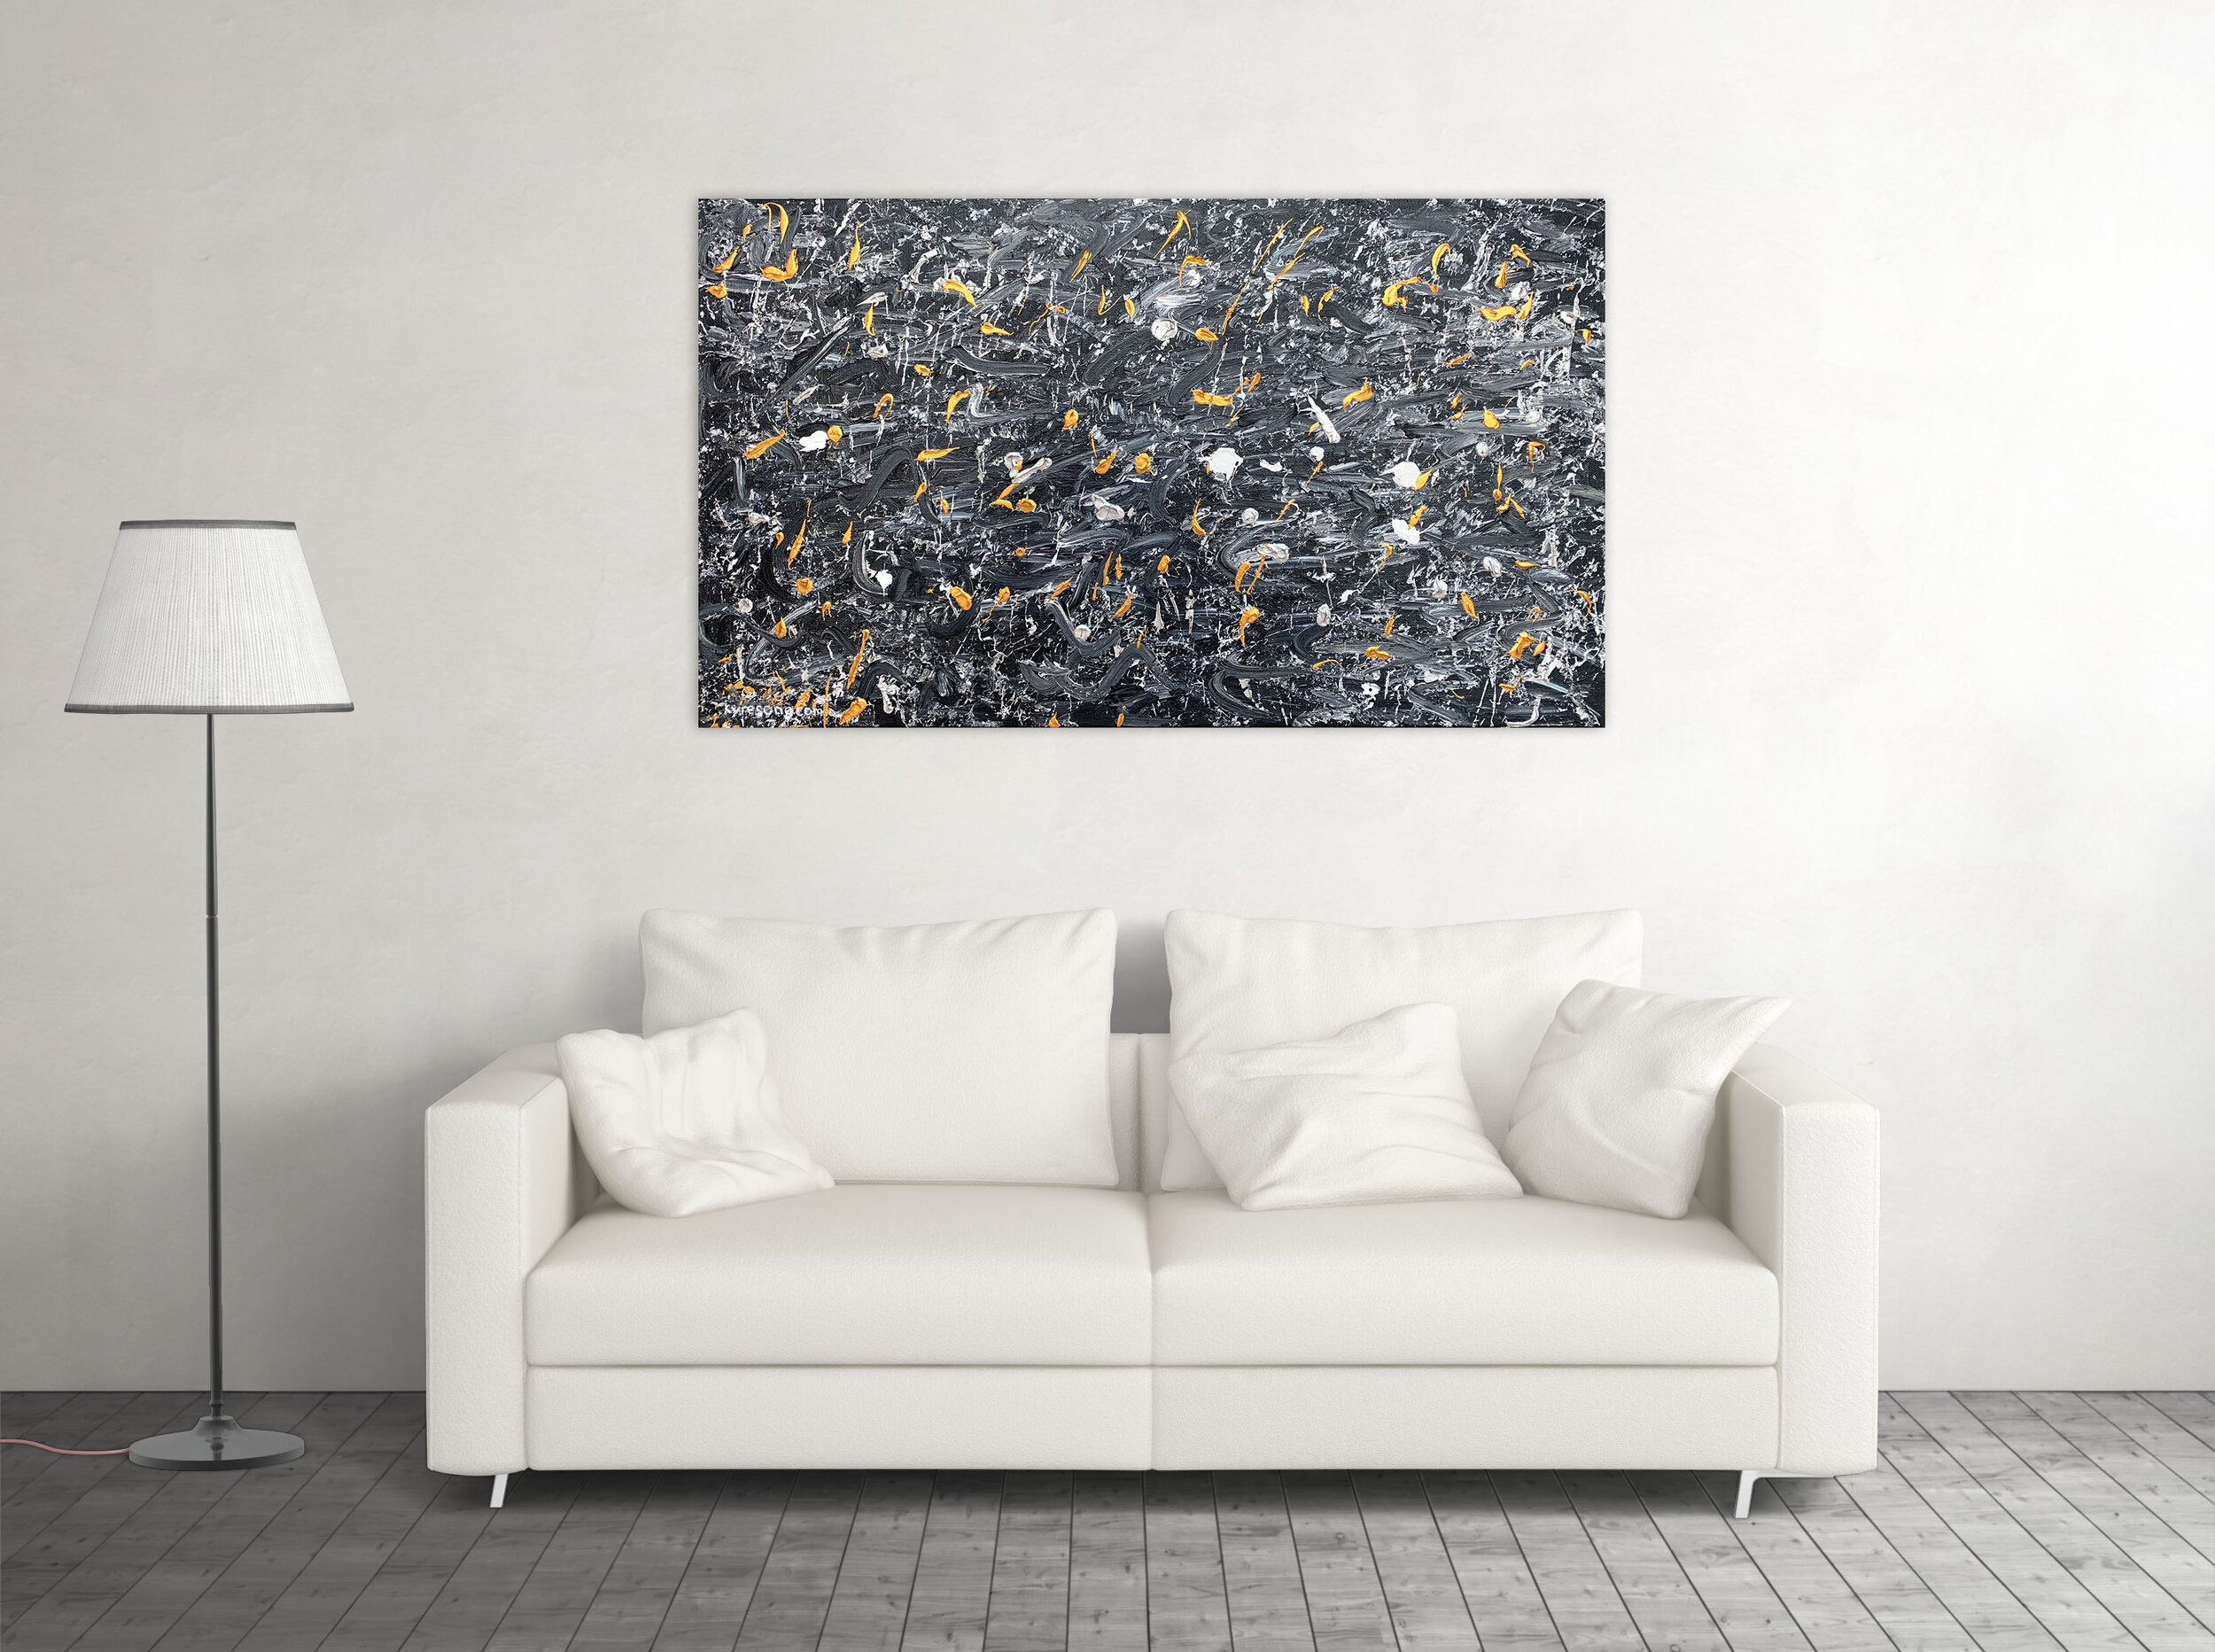 abstract-expressionism-painting-zhubao-fashao-mockup.jpg